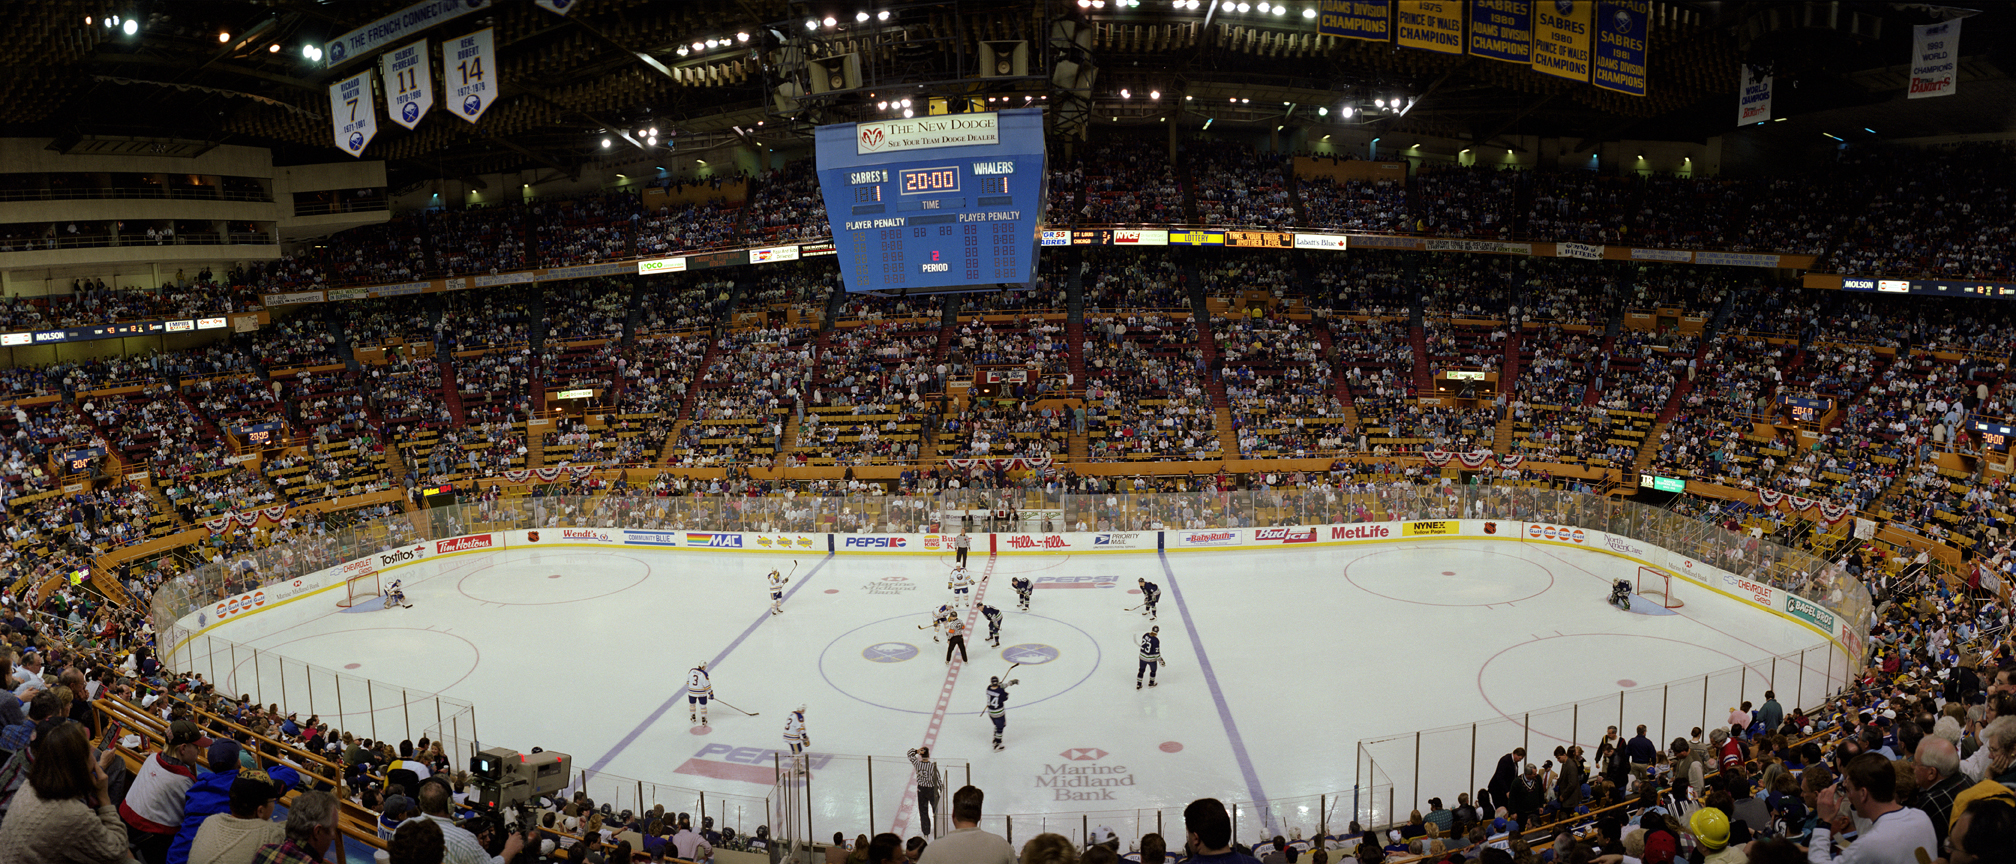 Buffalo Sabres vs. Hartford Whalers April 14, 1996